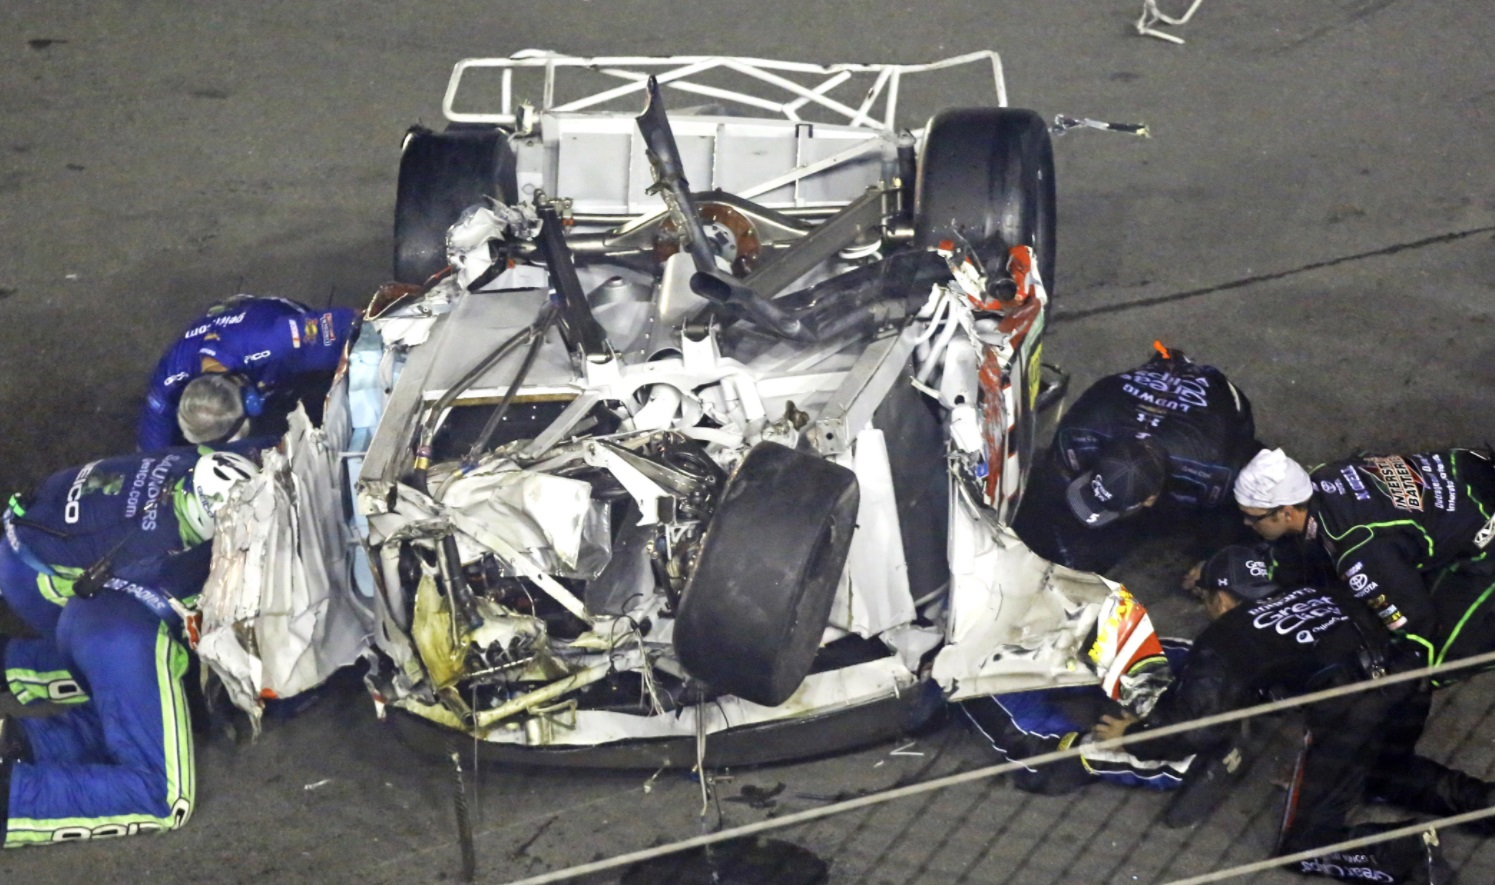 Almost $300,000 cost on NASCAR racing car accident 2017